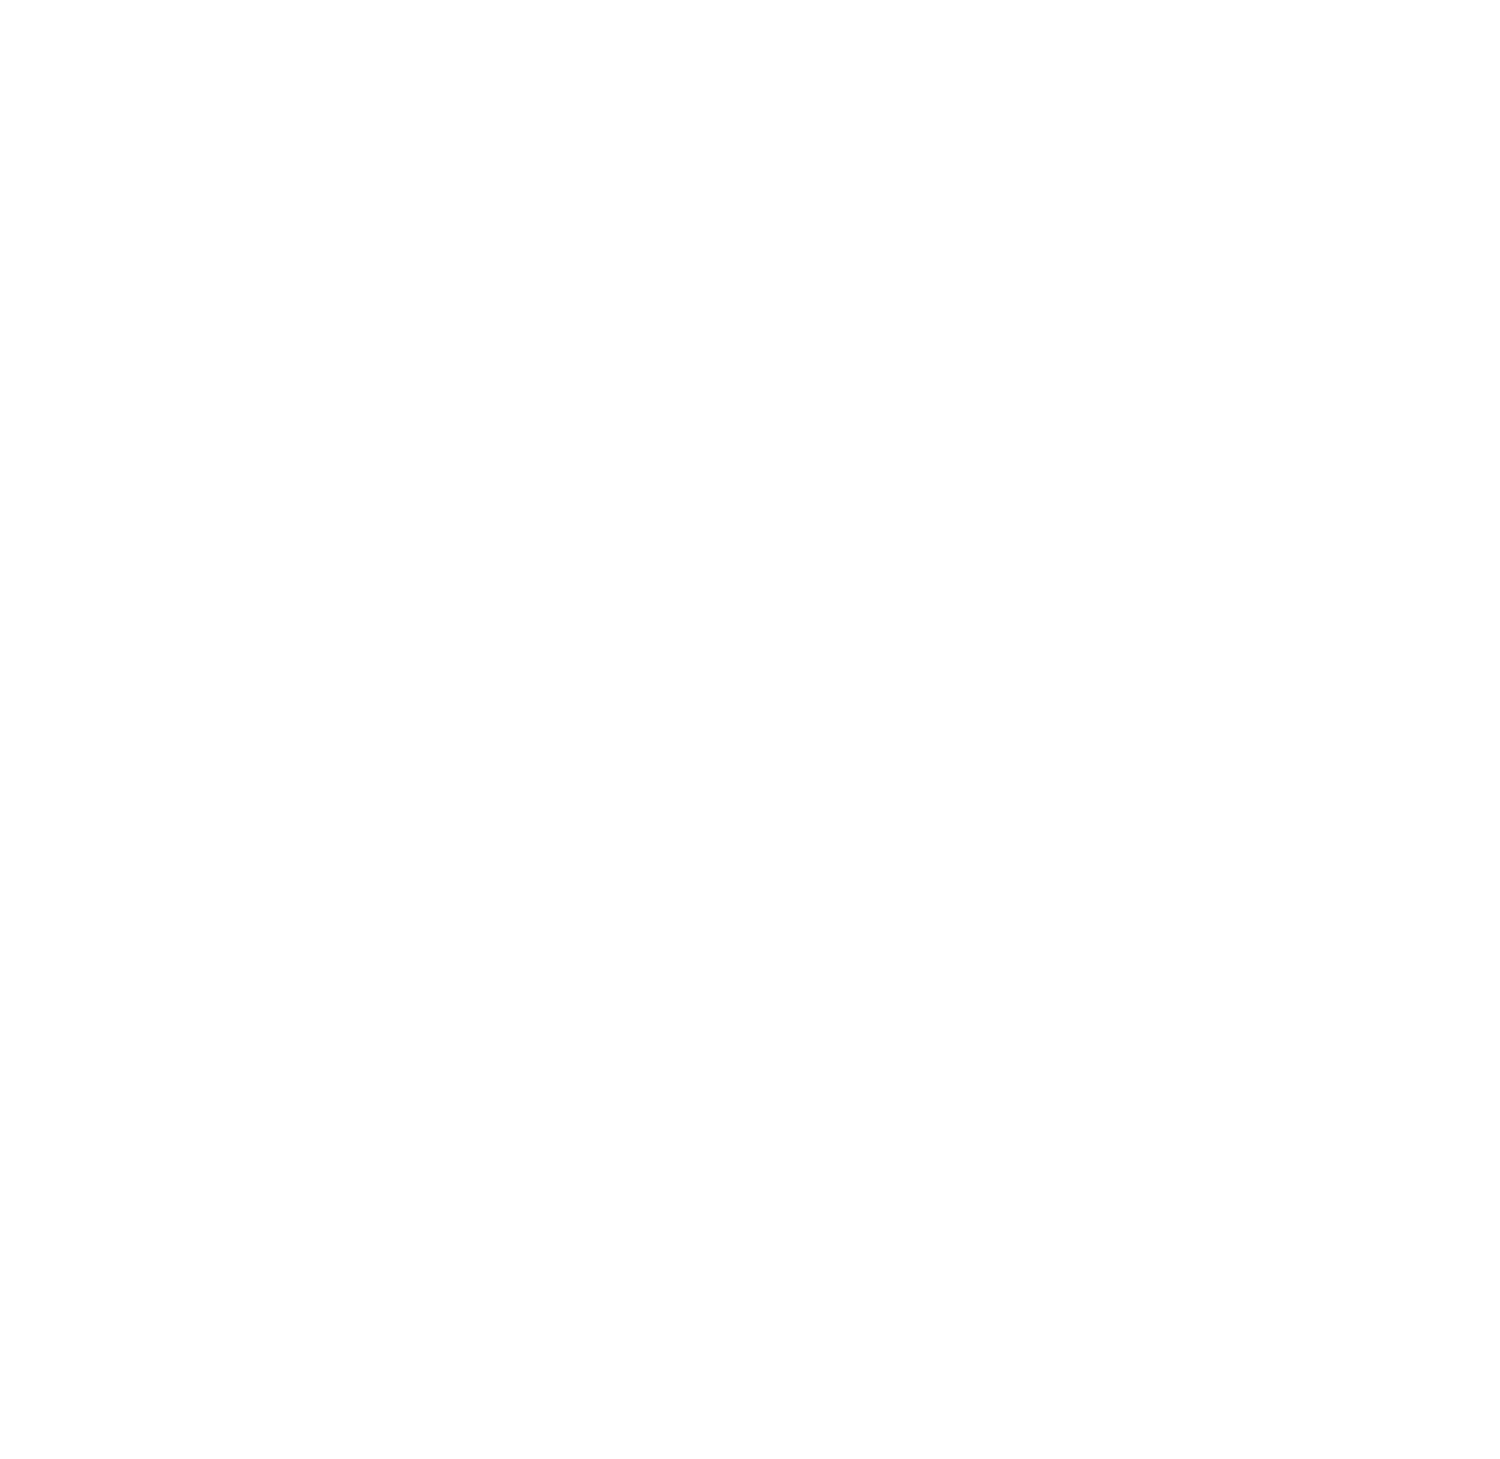 Red Oaks Forest School